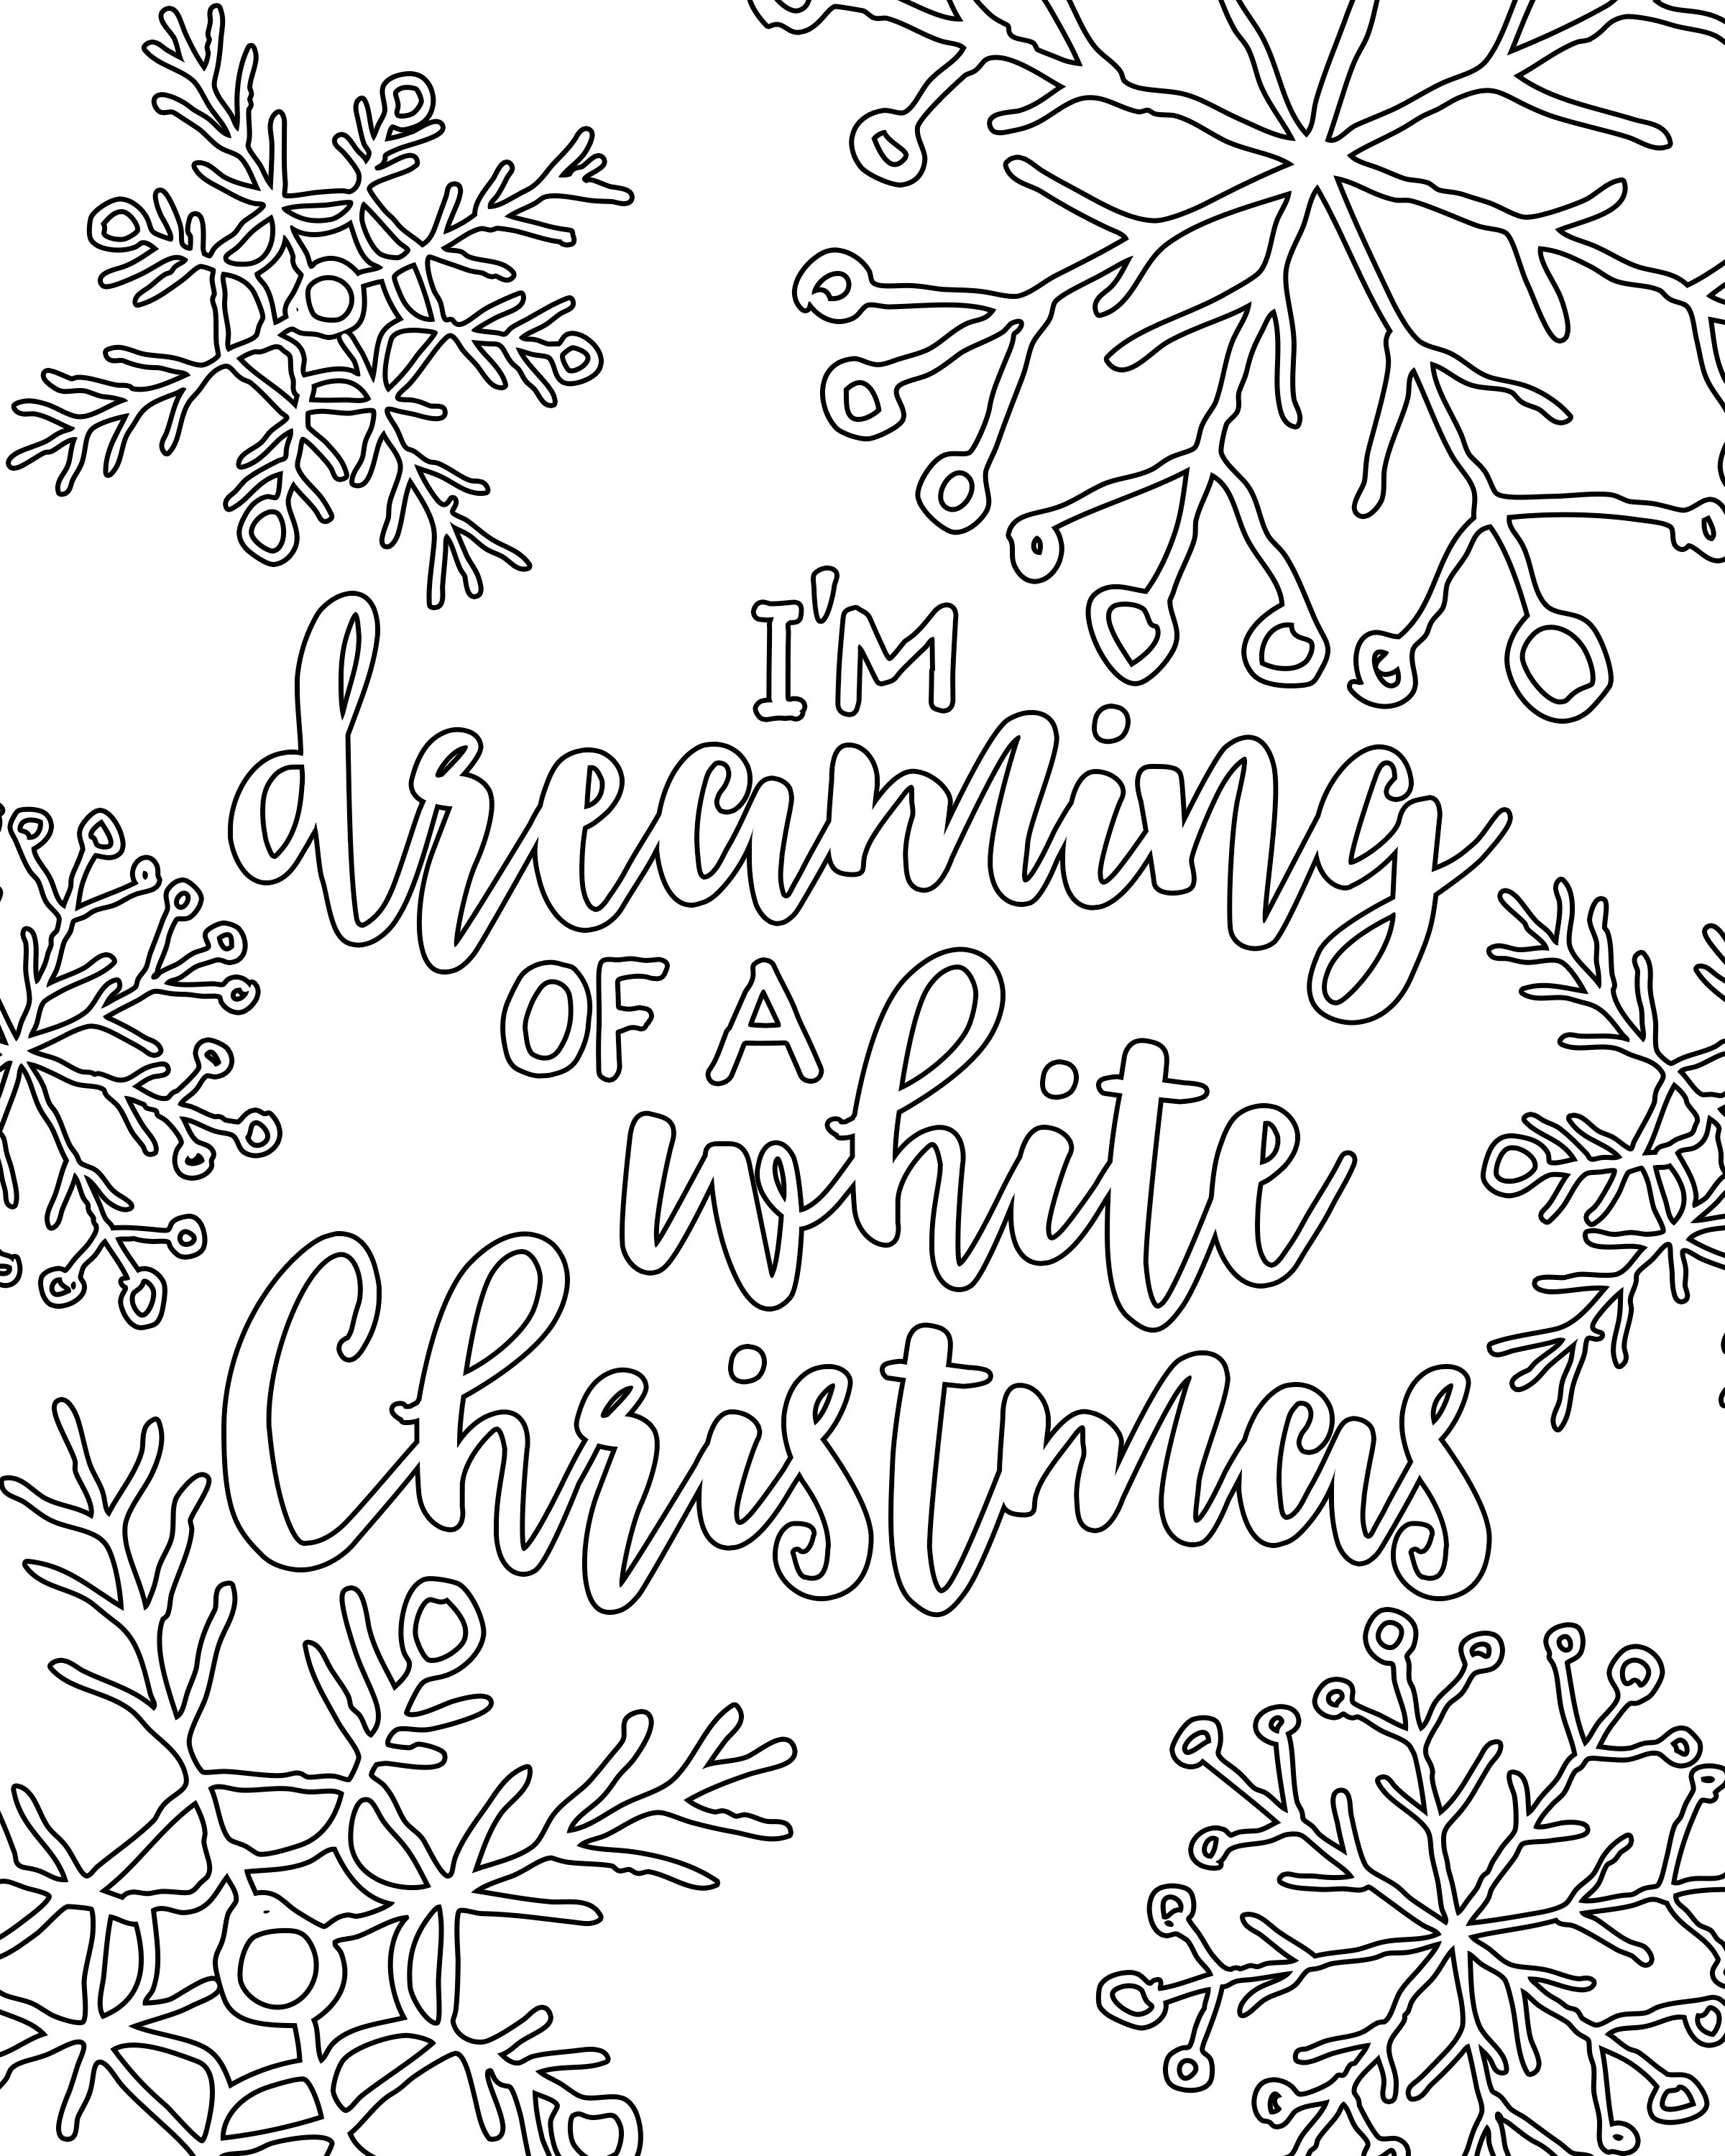 Free Printable White Christmas Adult Coloring Pages | Coloring Pages - Free Printable Christmas Coloring Pages